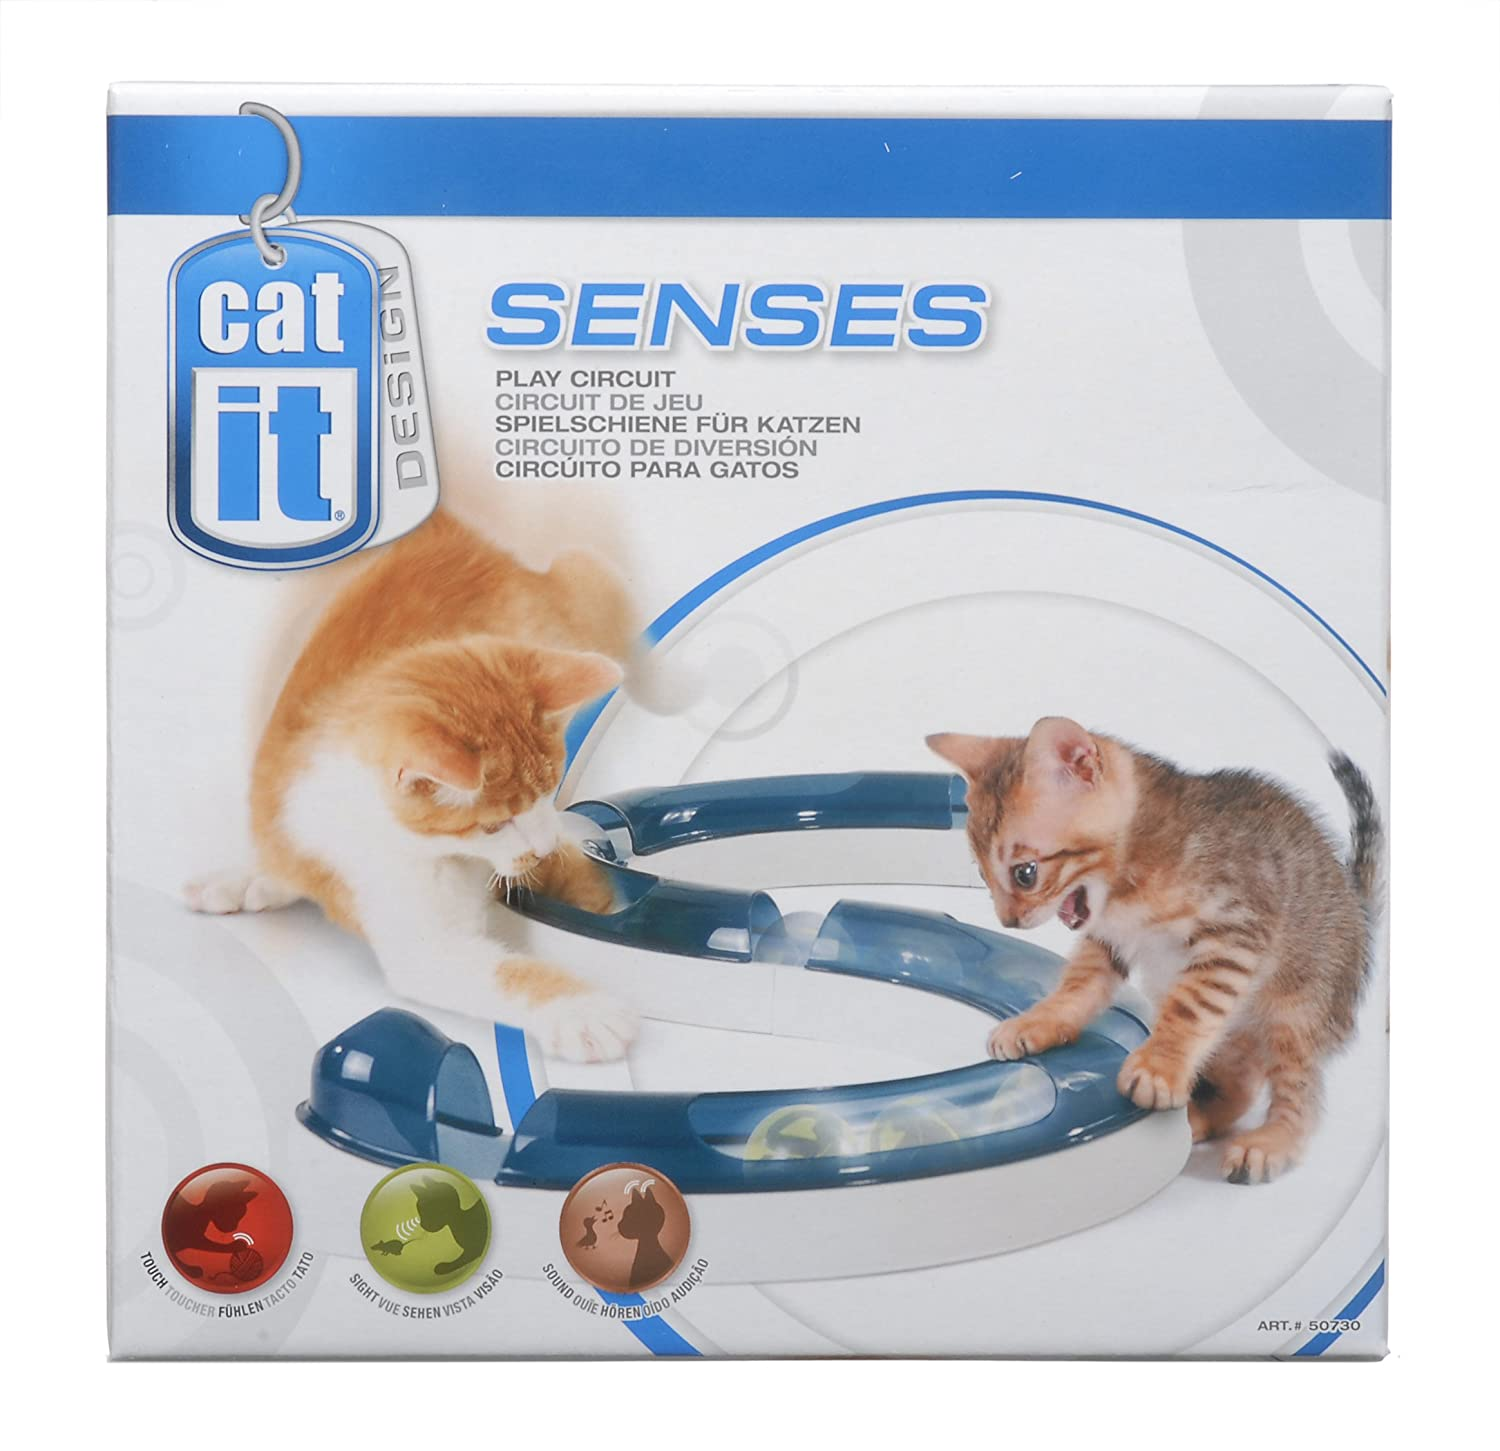 Catit Design Senses Play Circuit Original Pet Mice Greatest Hits Simple Circuits The Foutan Board And Animal Toys Supplies